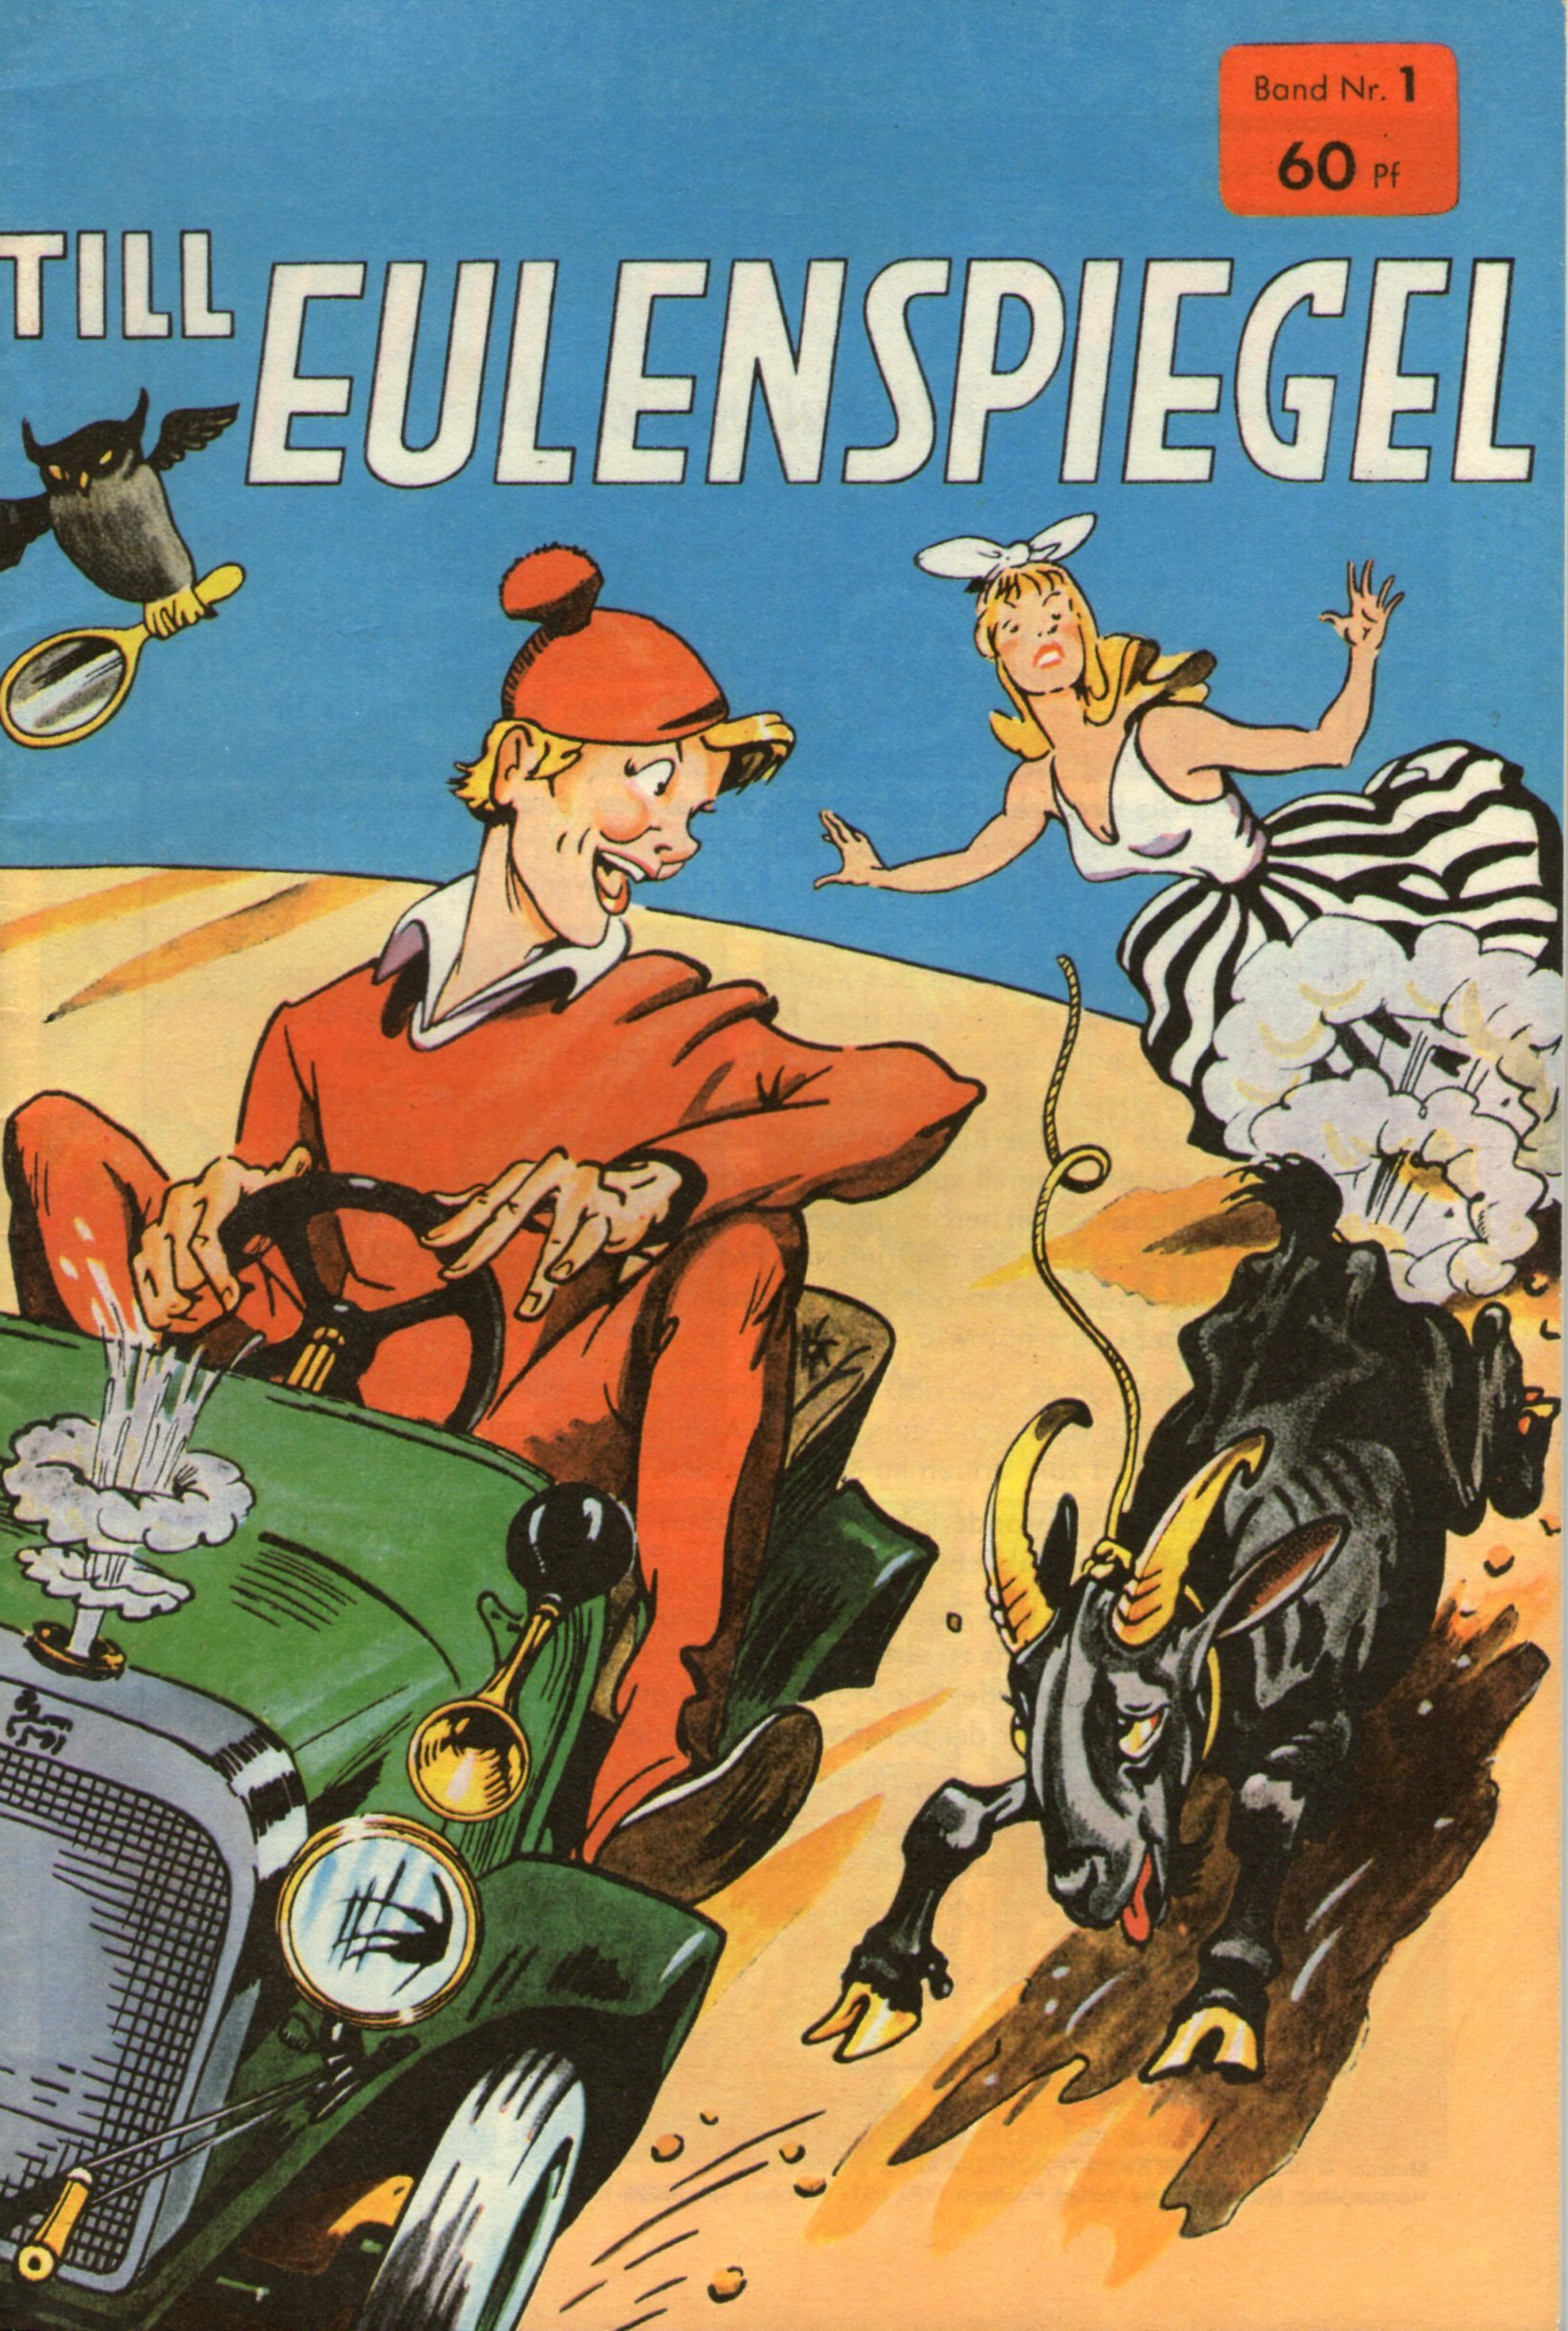 Hethke Comics Till Eulenspiegel # 1 - Rolf Kauka - Fix und Foxi Comic 1993 Comic – 1993 B009GFY8S0 Belletristik - Comic Cartoon